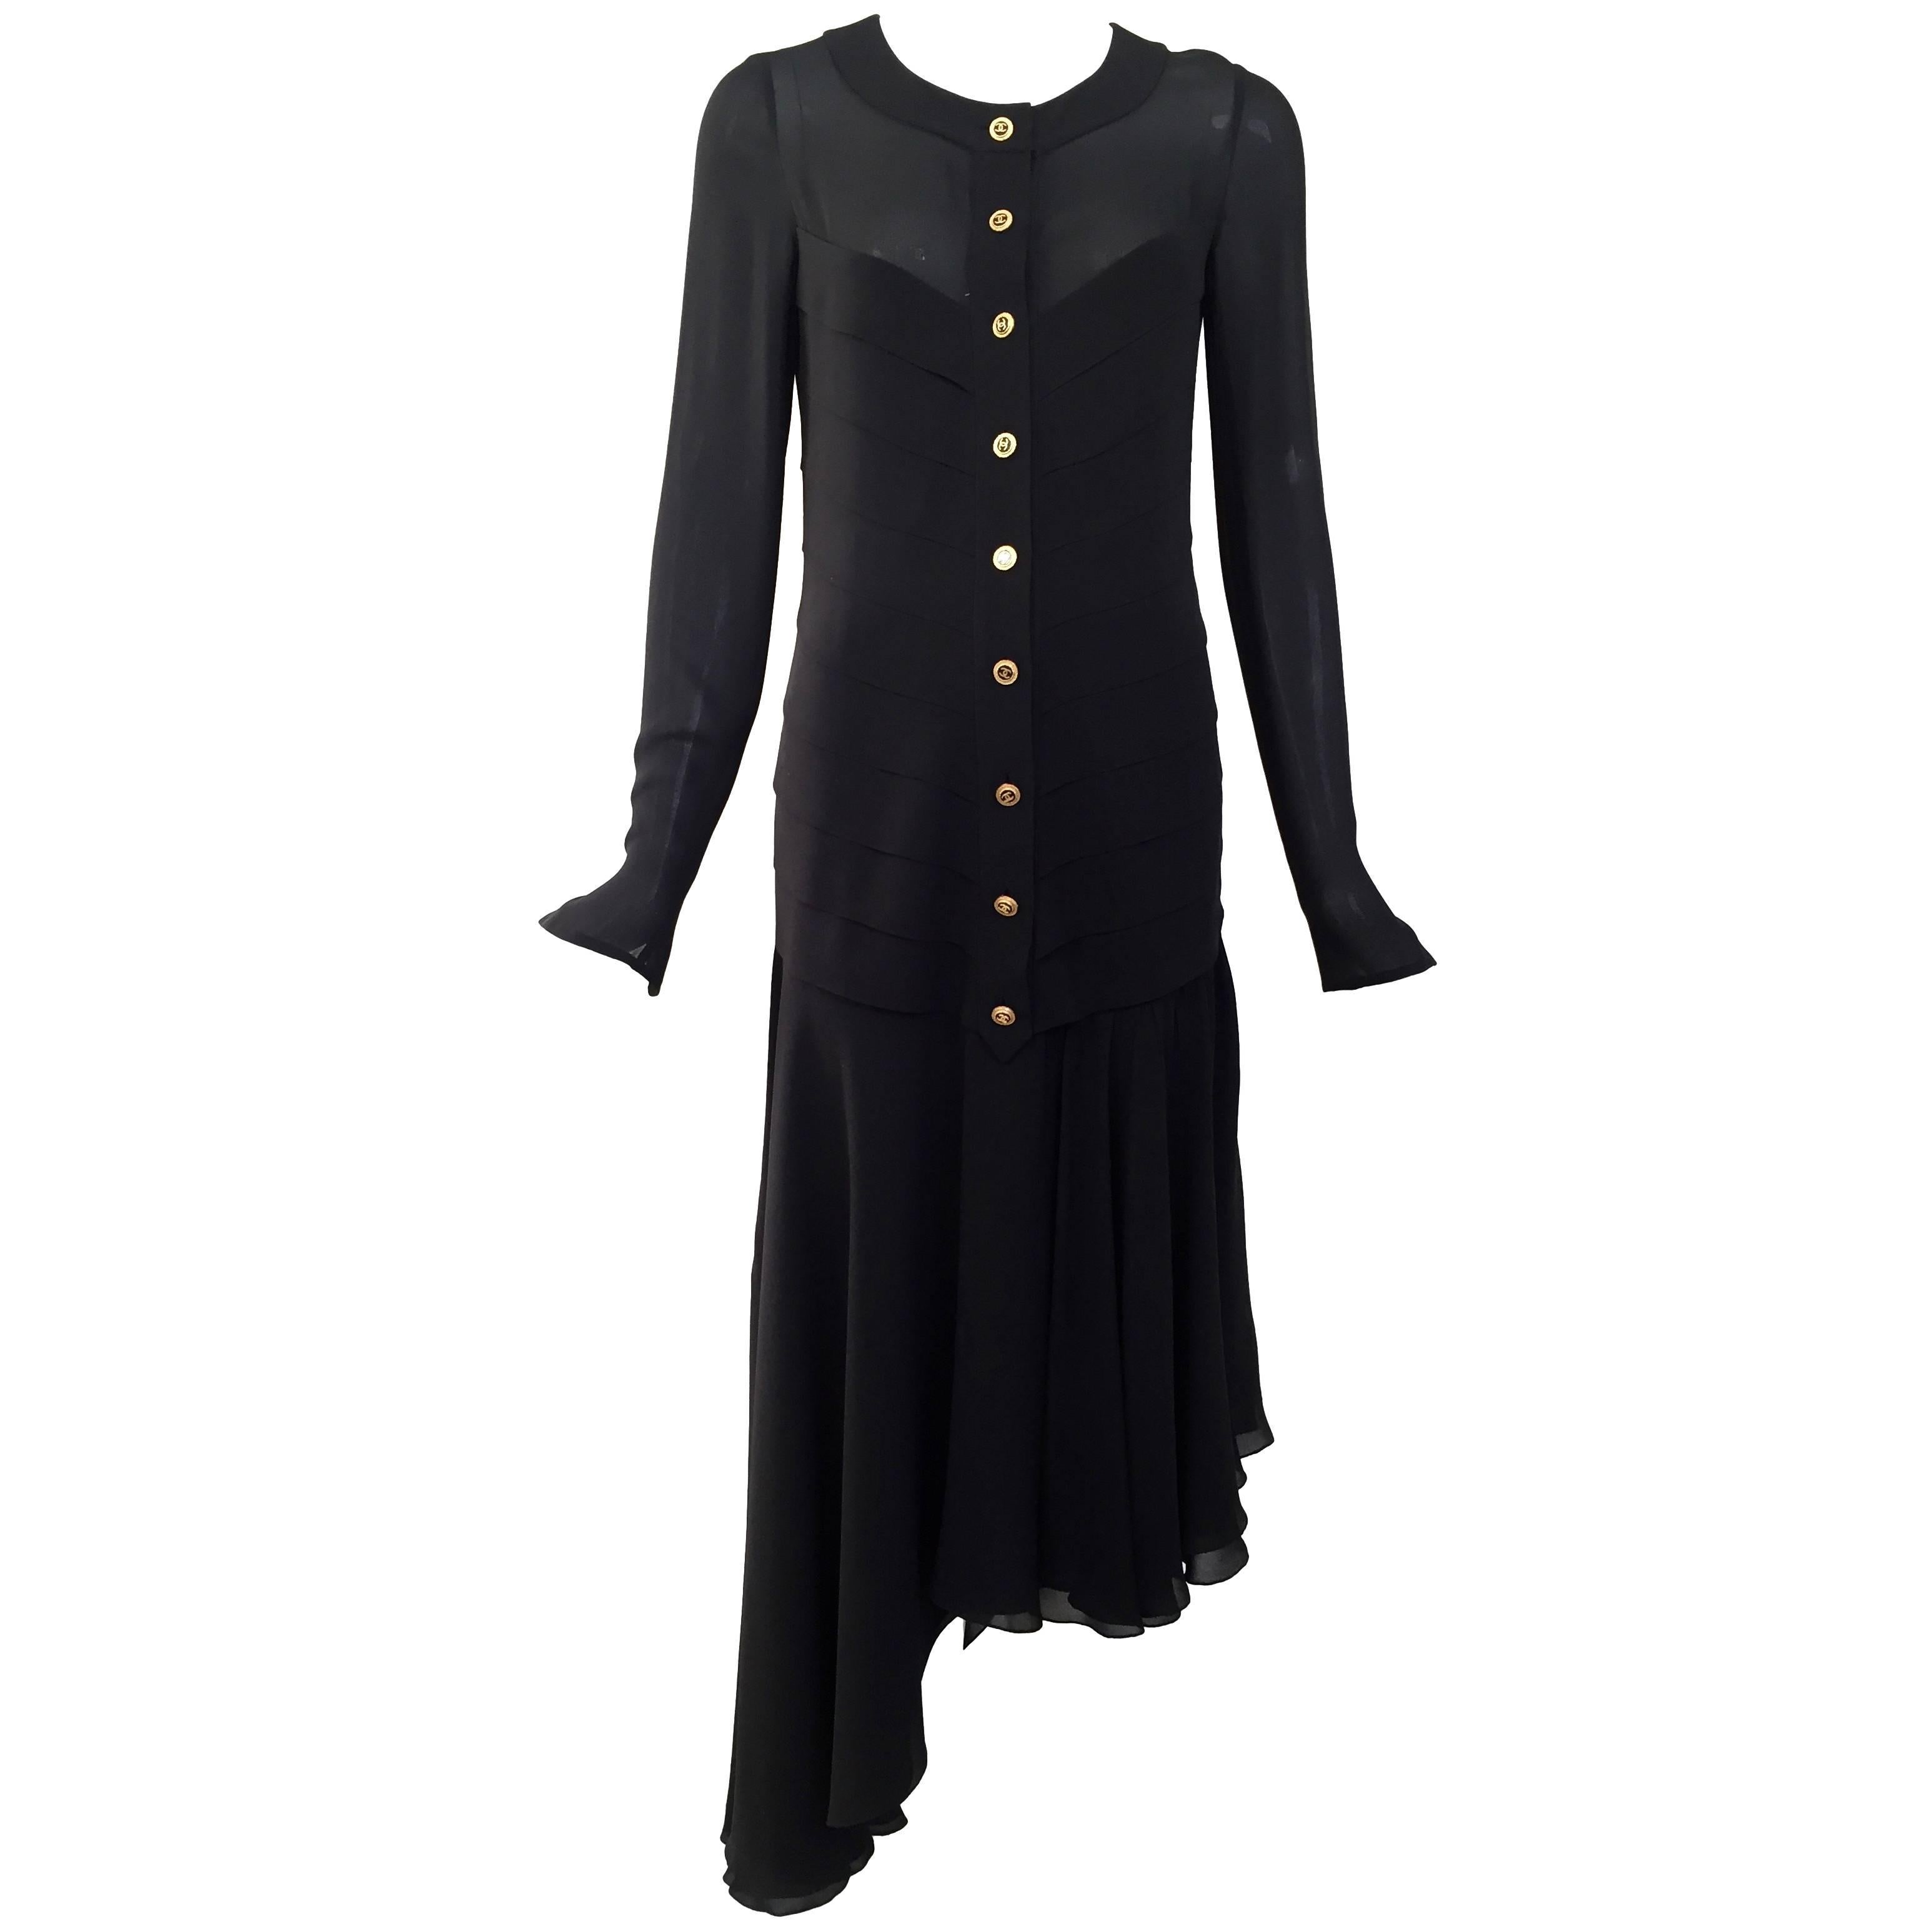 1980s Chanel Black Silk Dress with Asymmetrical Hem